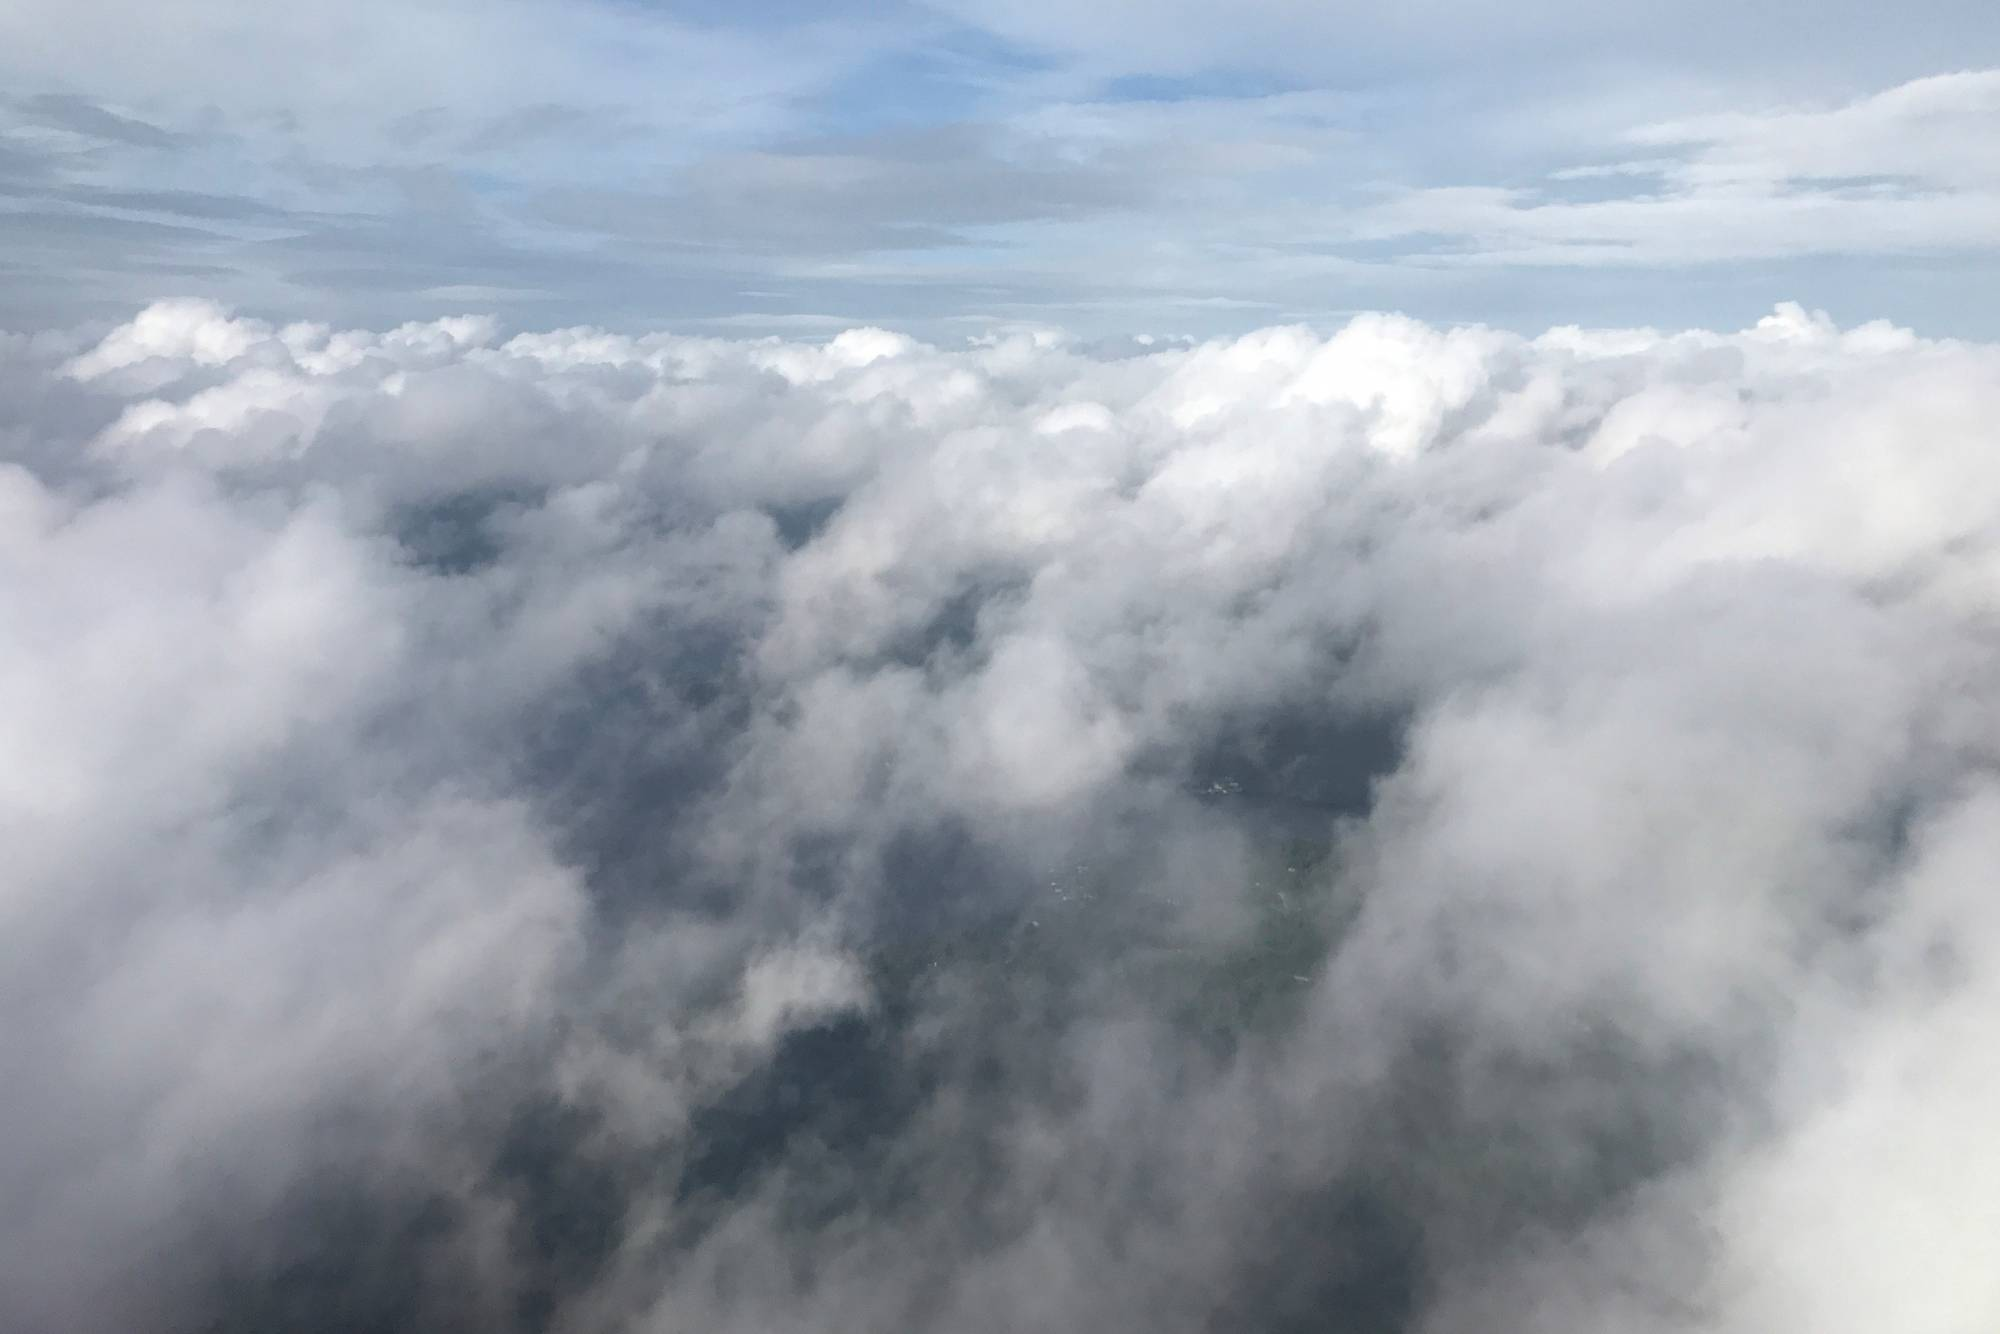 Storm clouds form before Hurricane Michael comes ashore as pictured from an airplane in Tallahassee